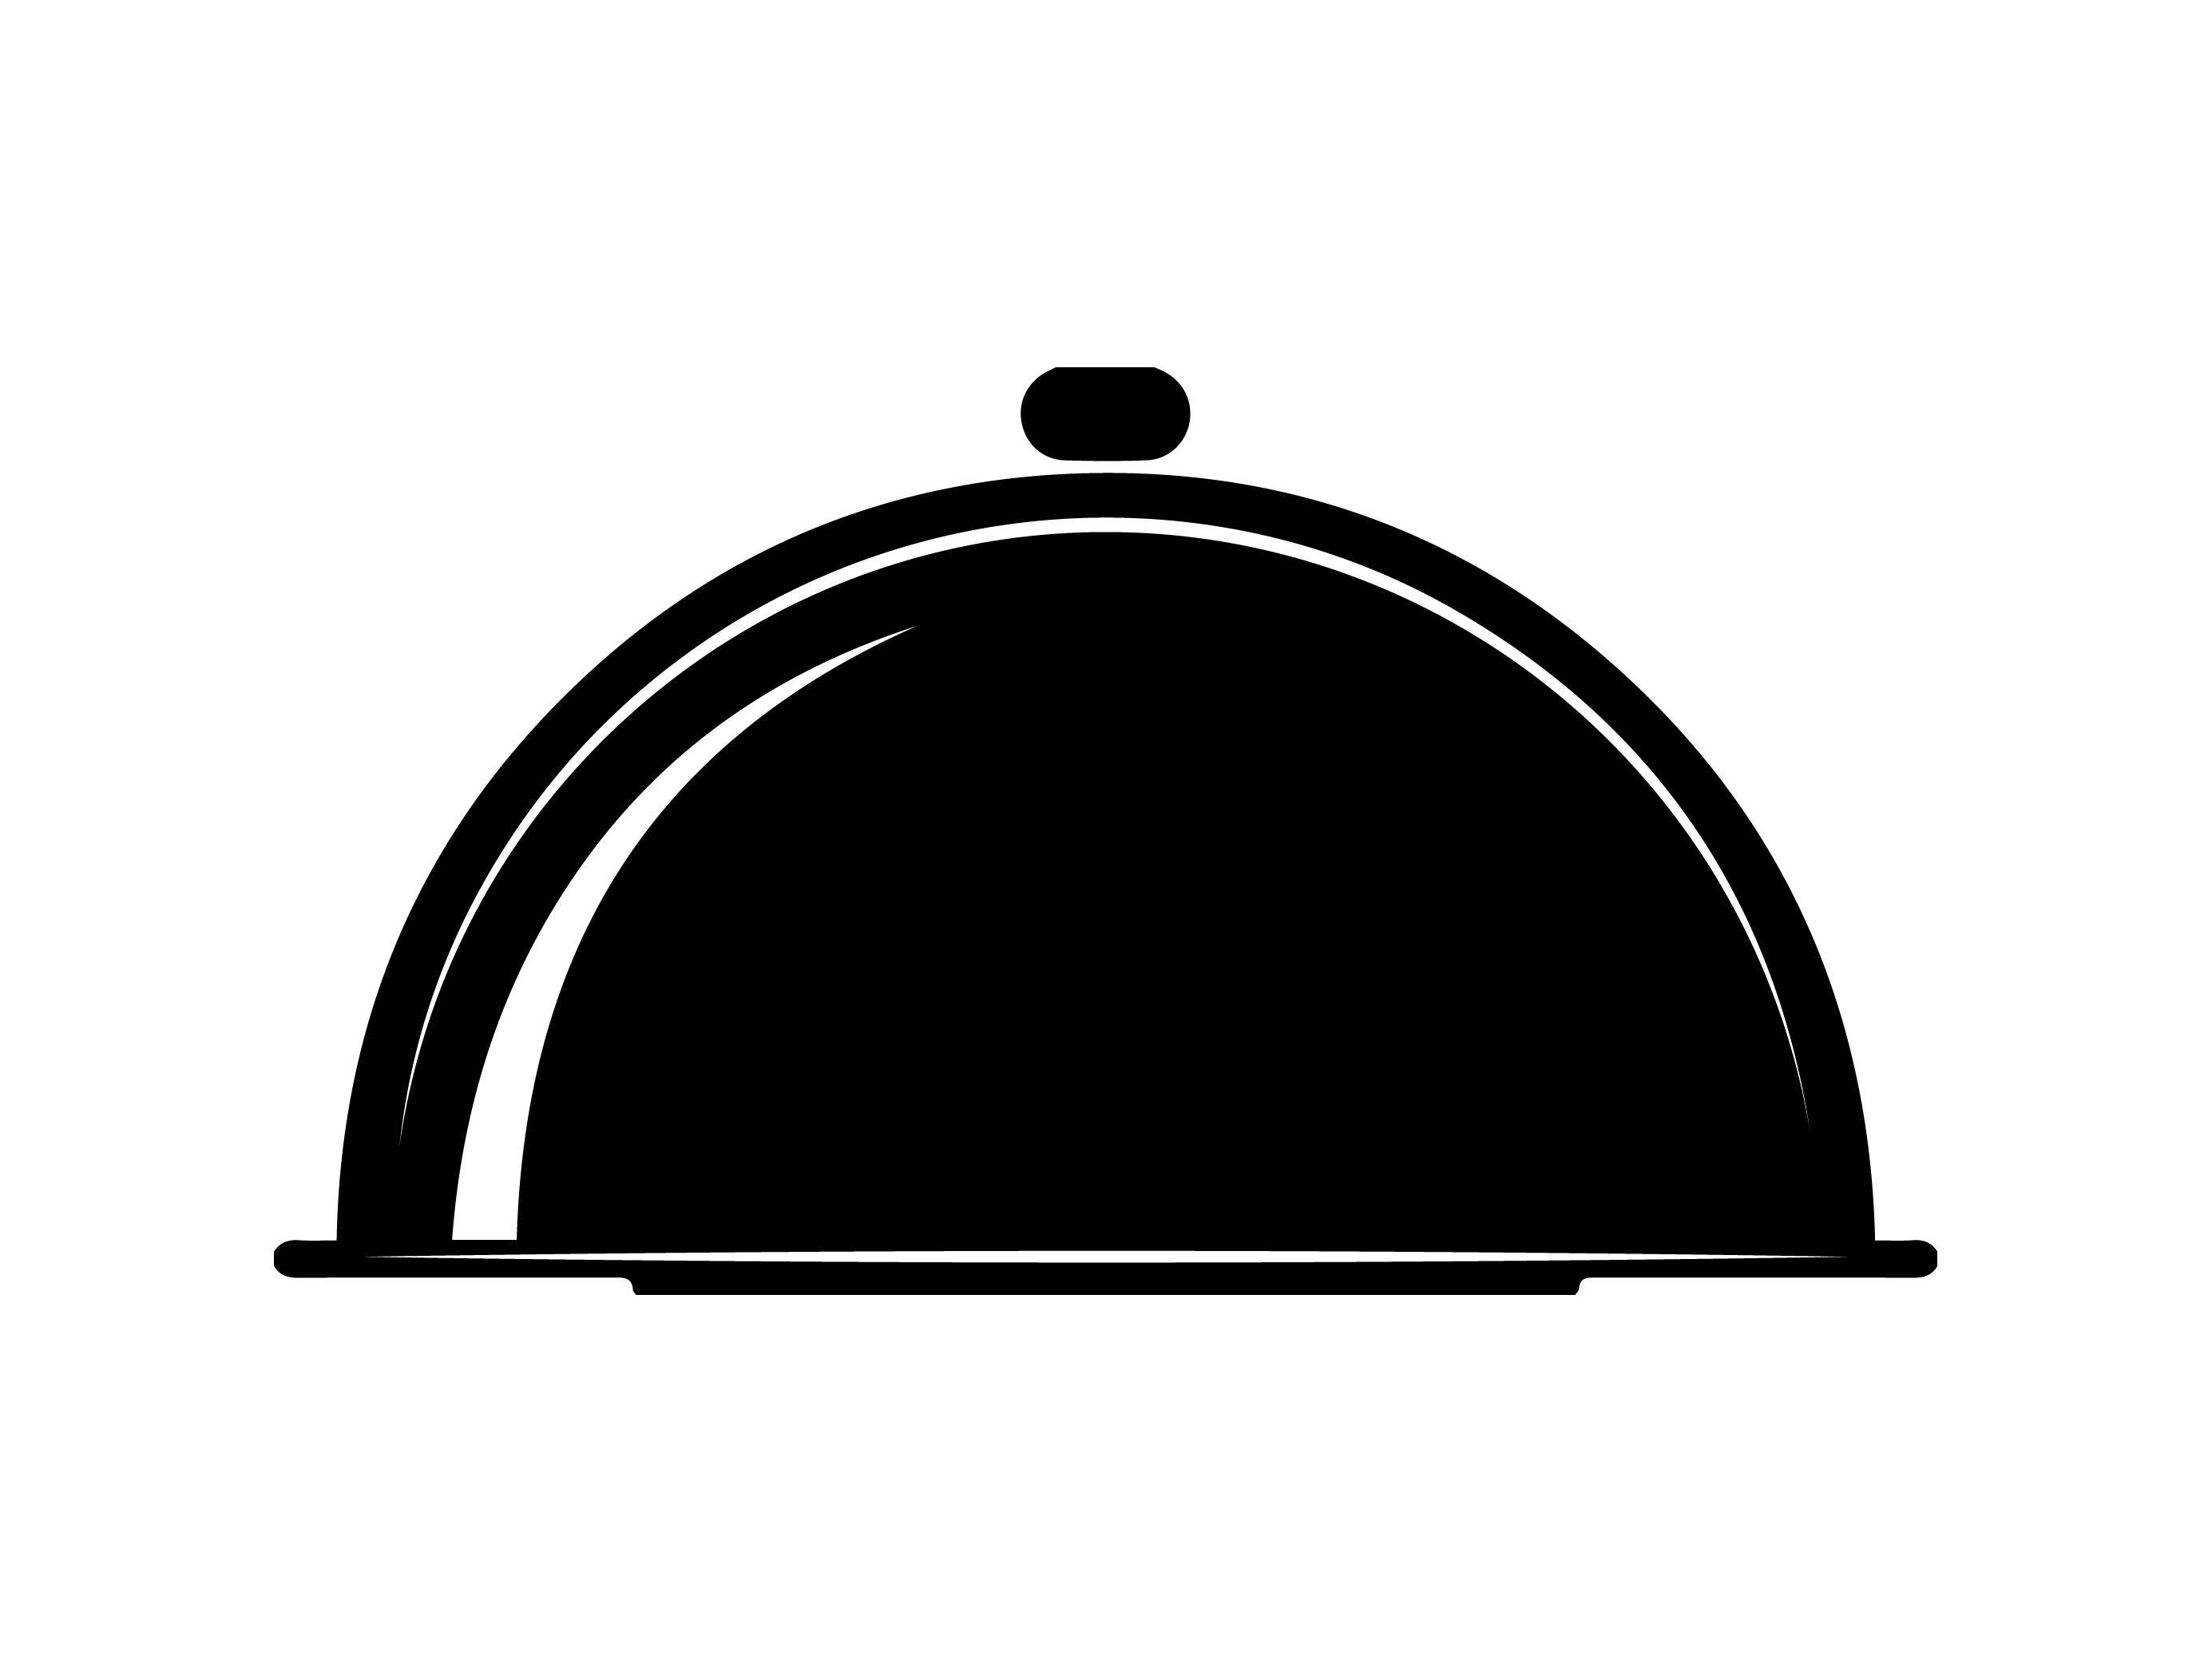 Dish clipart plate cover.